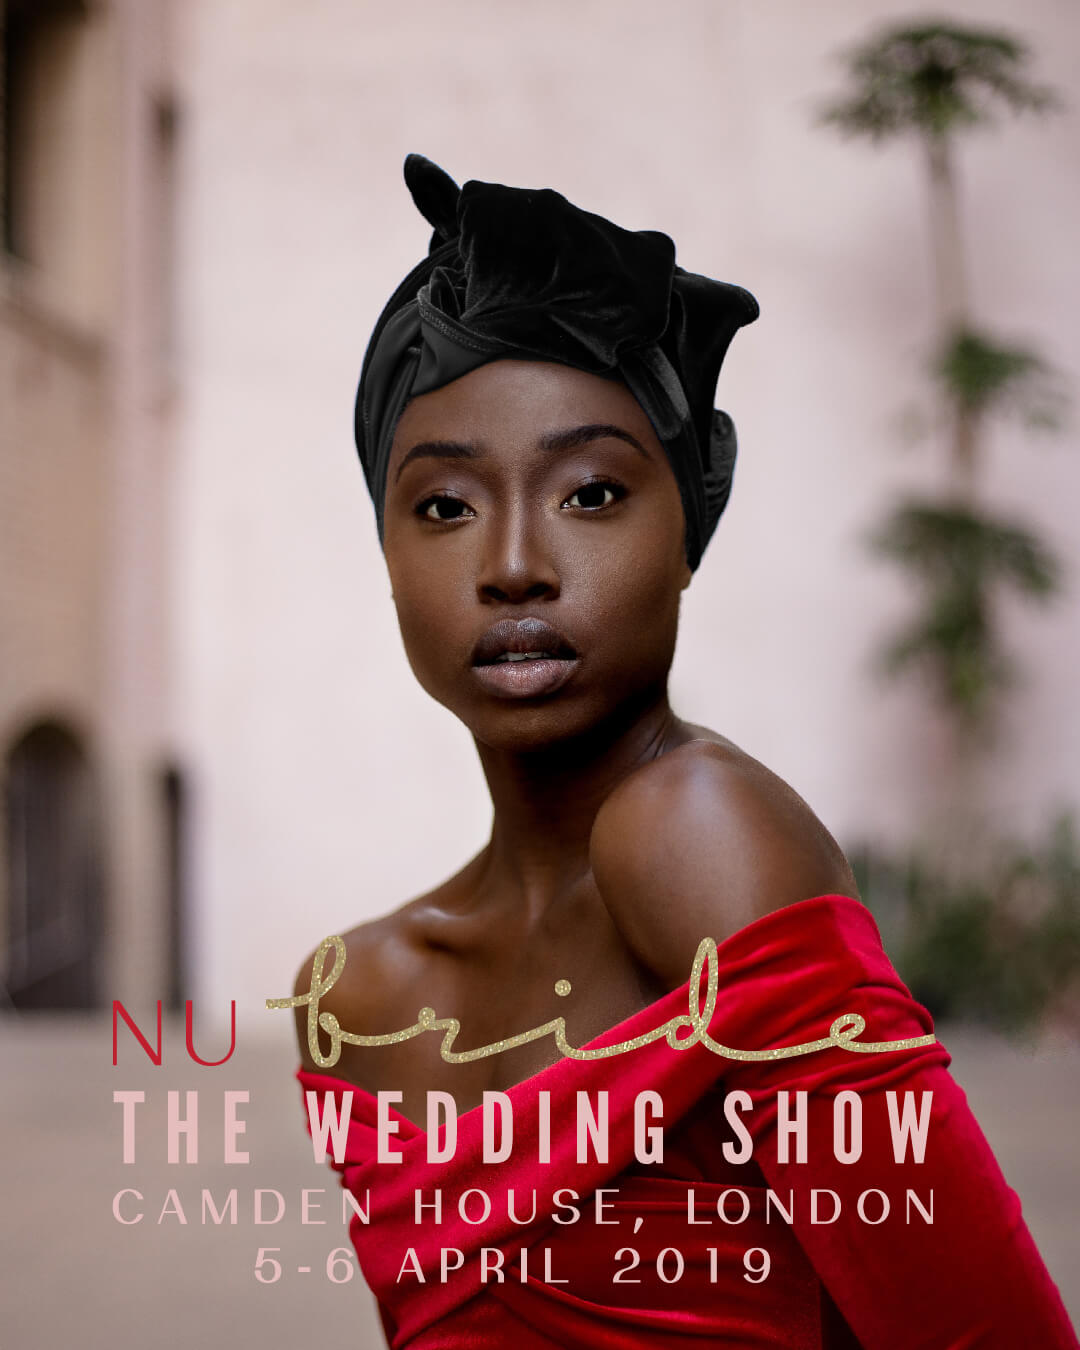 Nu-Bride-Wedding-Show-2019-Queensmith.jpg